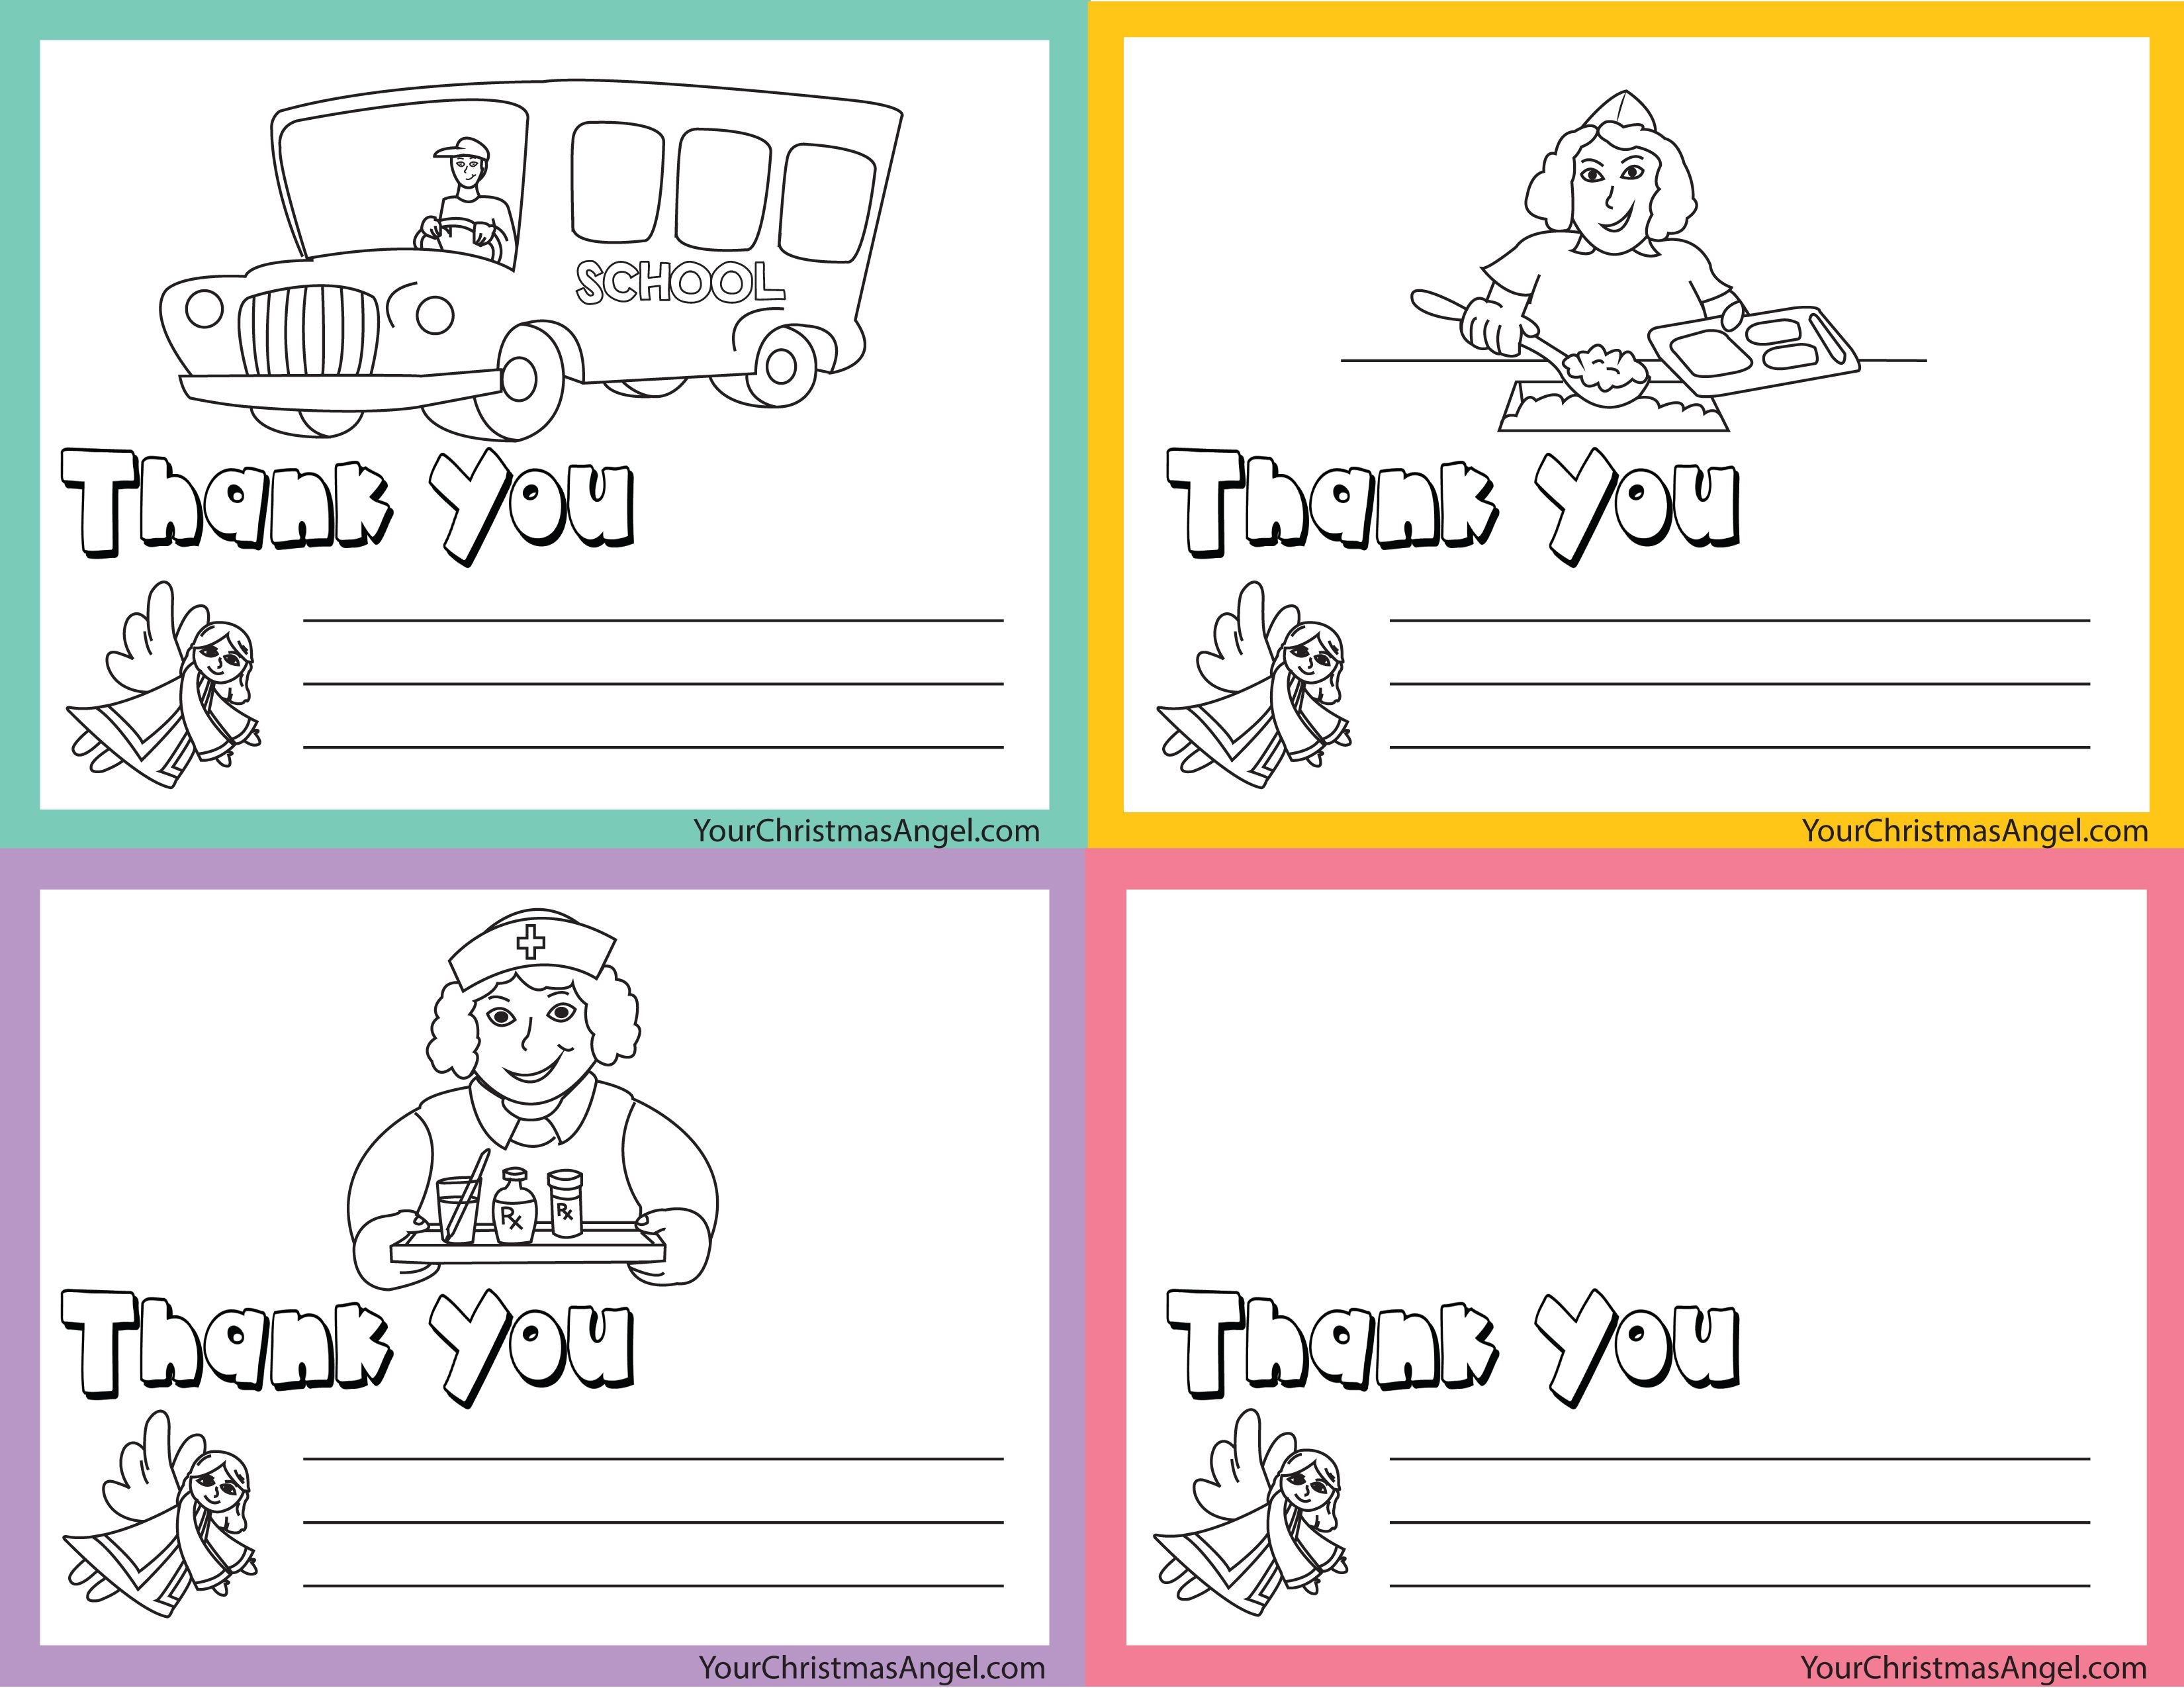 image about Bus Driver Thank You Card Printable named Thank on your own playing cards for those people in just our college plans!! Best for